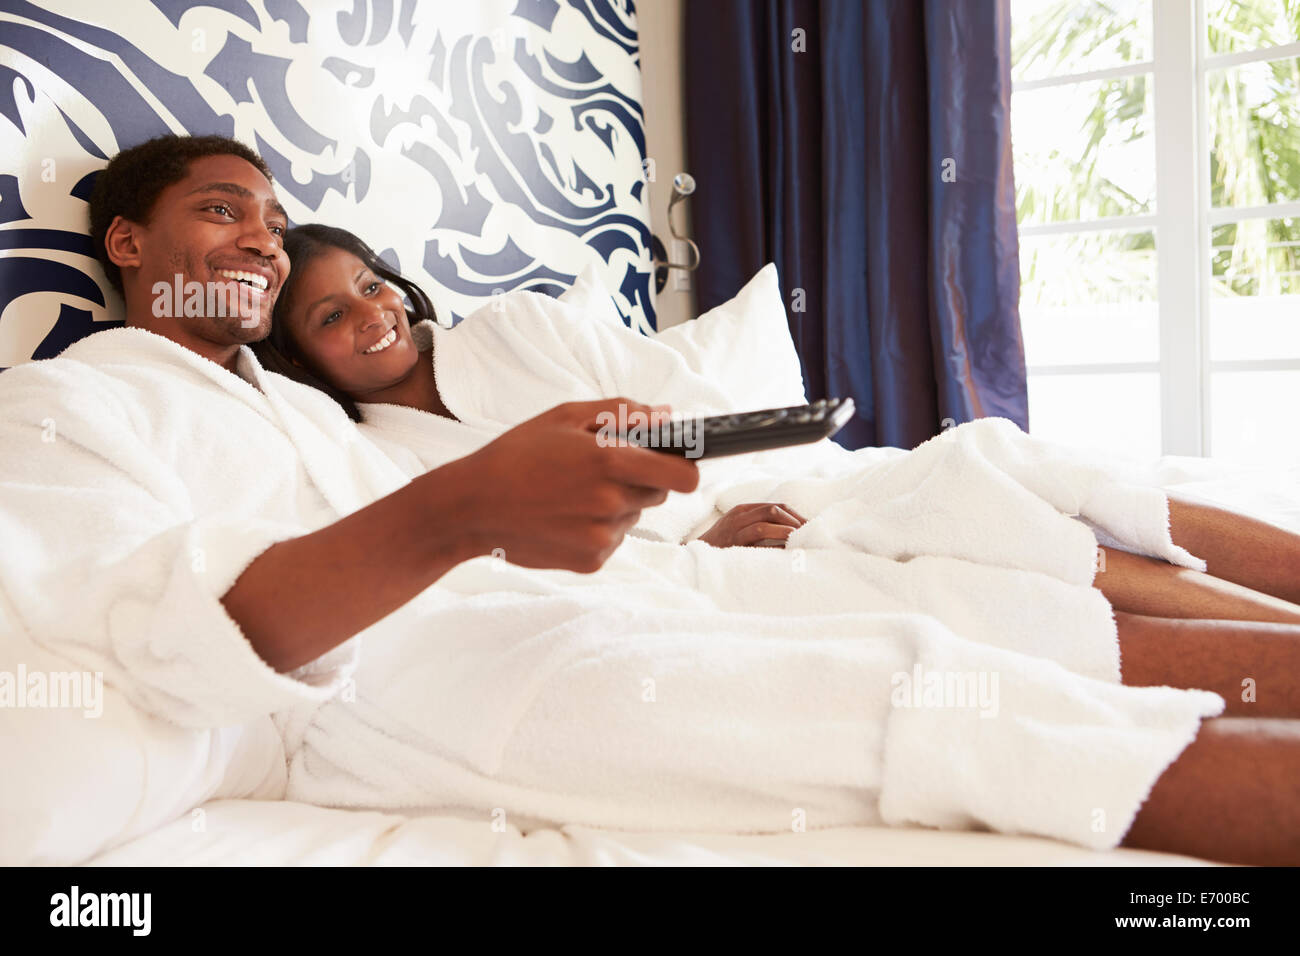 Couple Relaxing In Hotel Room Watching Television - Stock Image